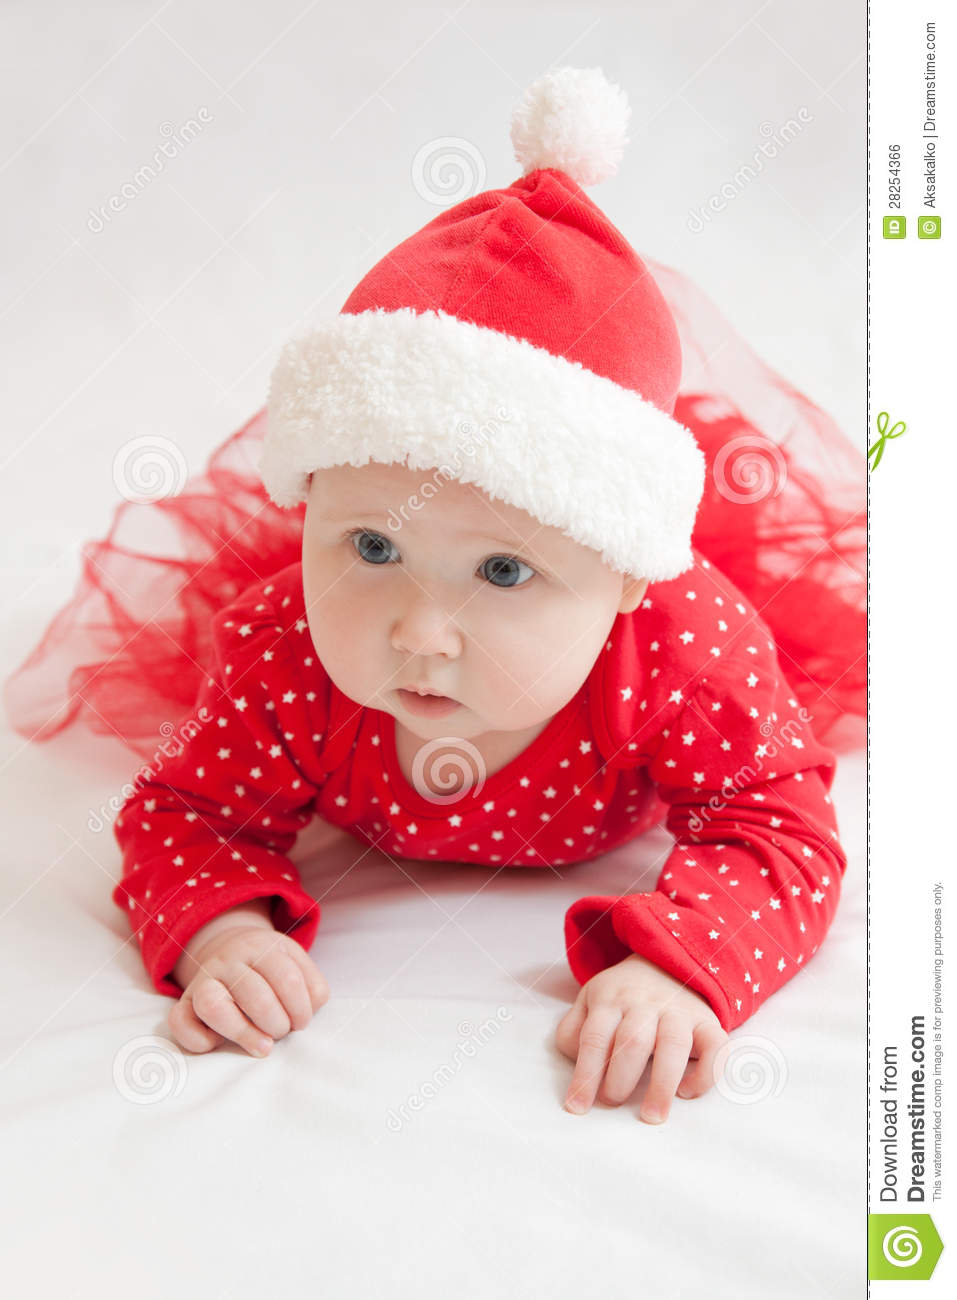 d2f81bad4a Cute Baby Girl In Christmas Hat Stock Photo - Image of season